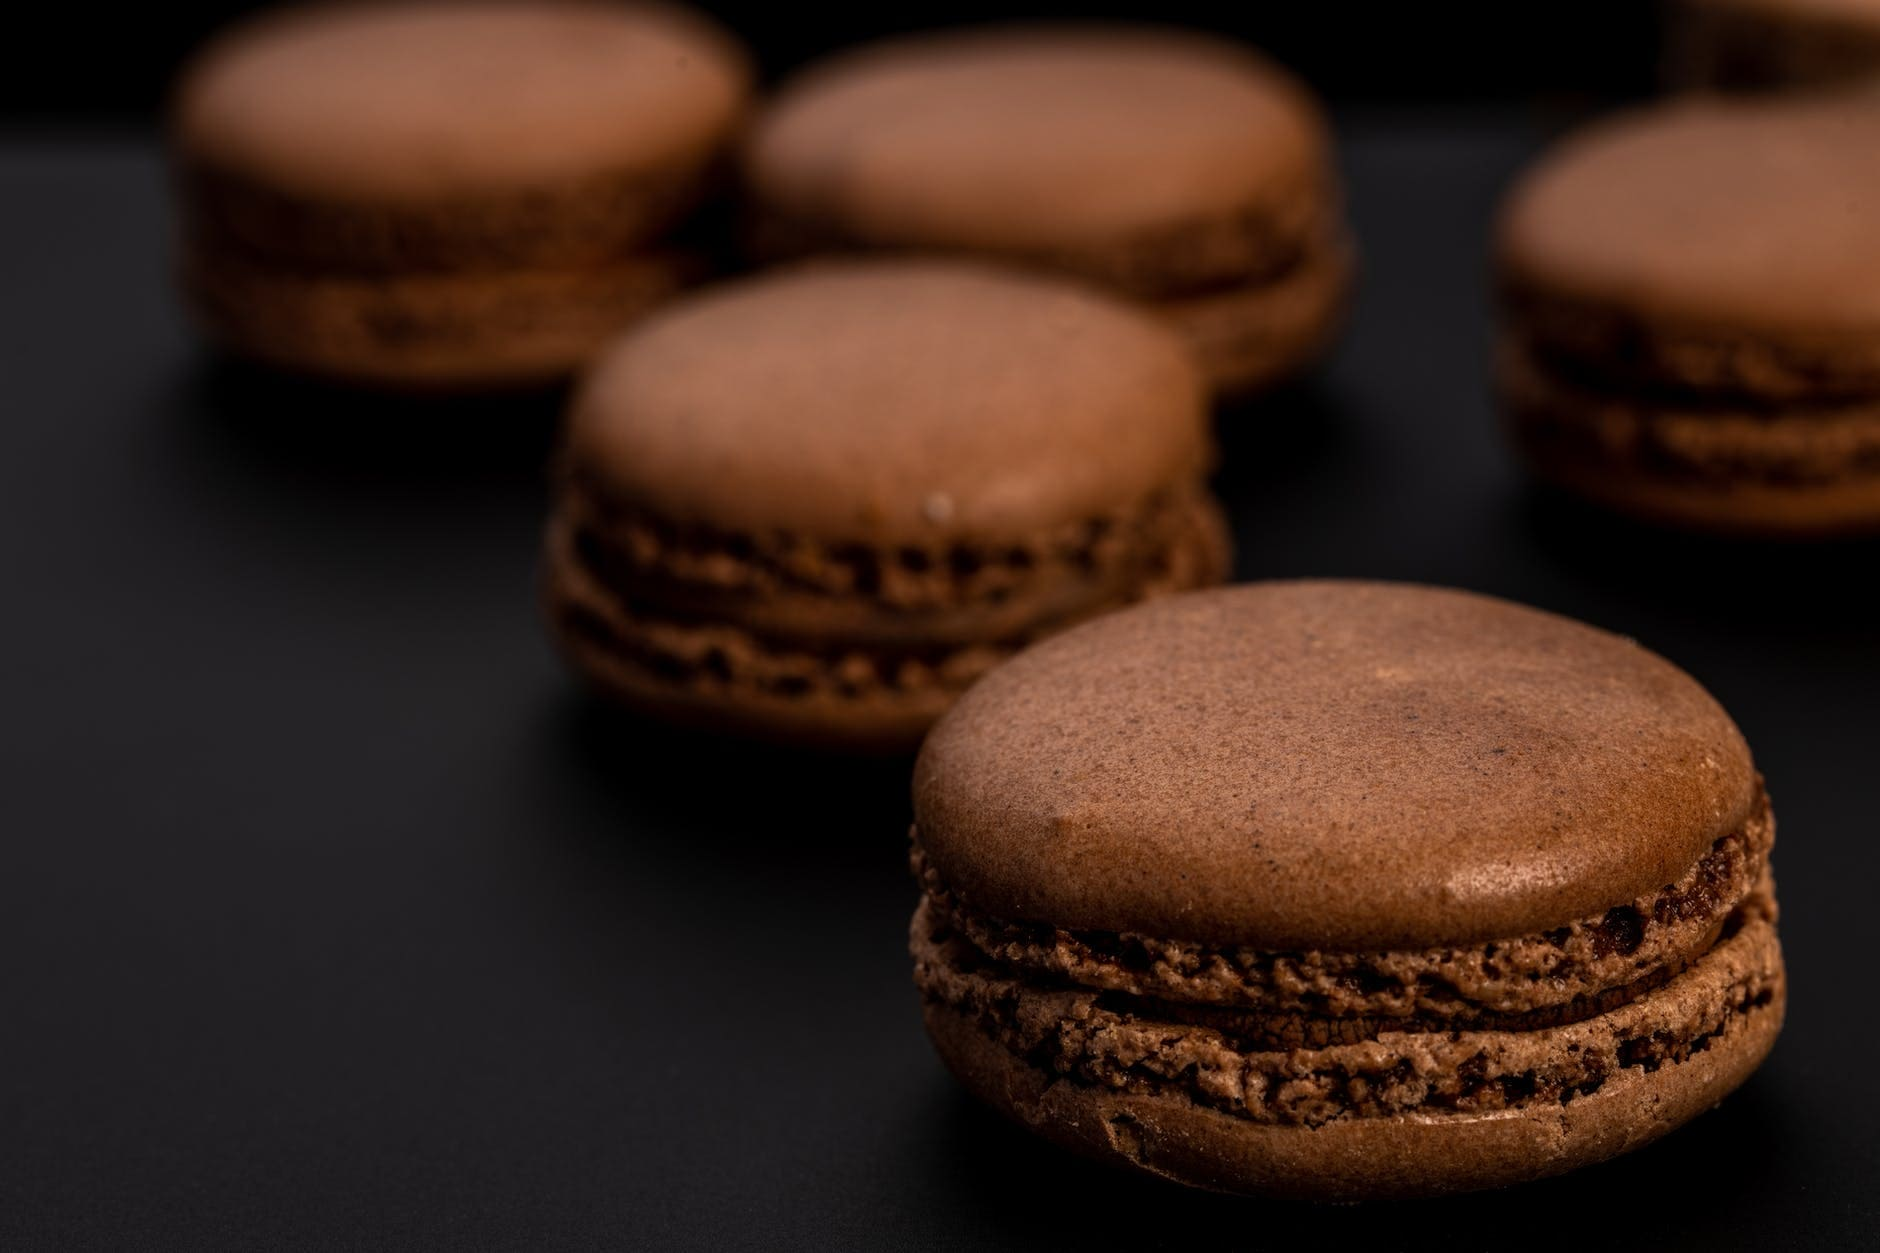 How to make chocolate Chateau biscuits